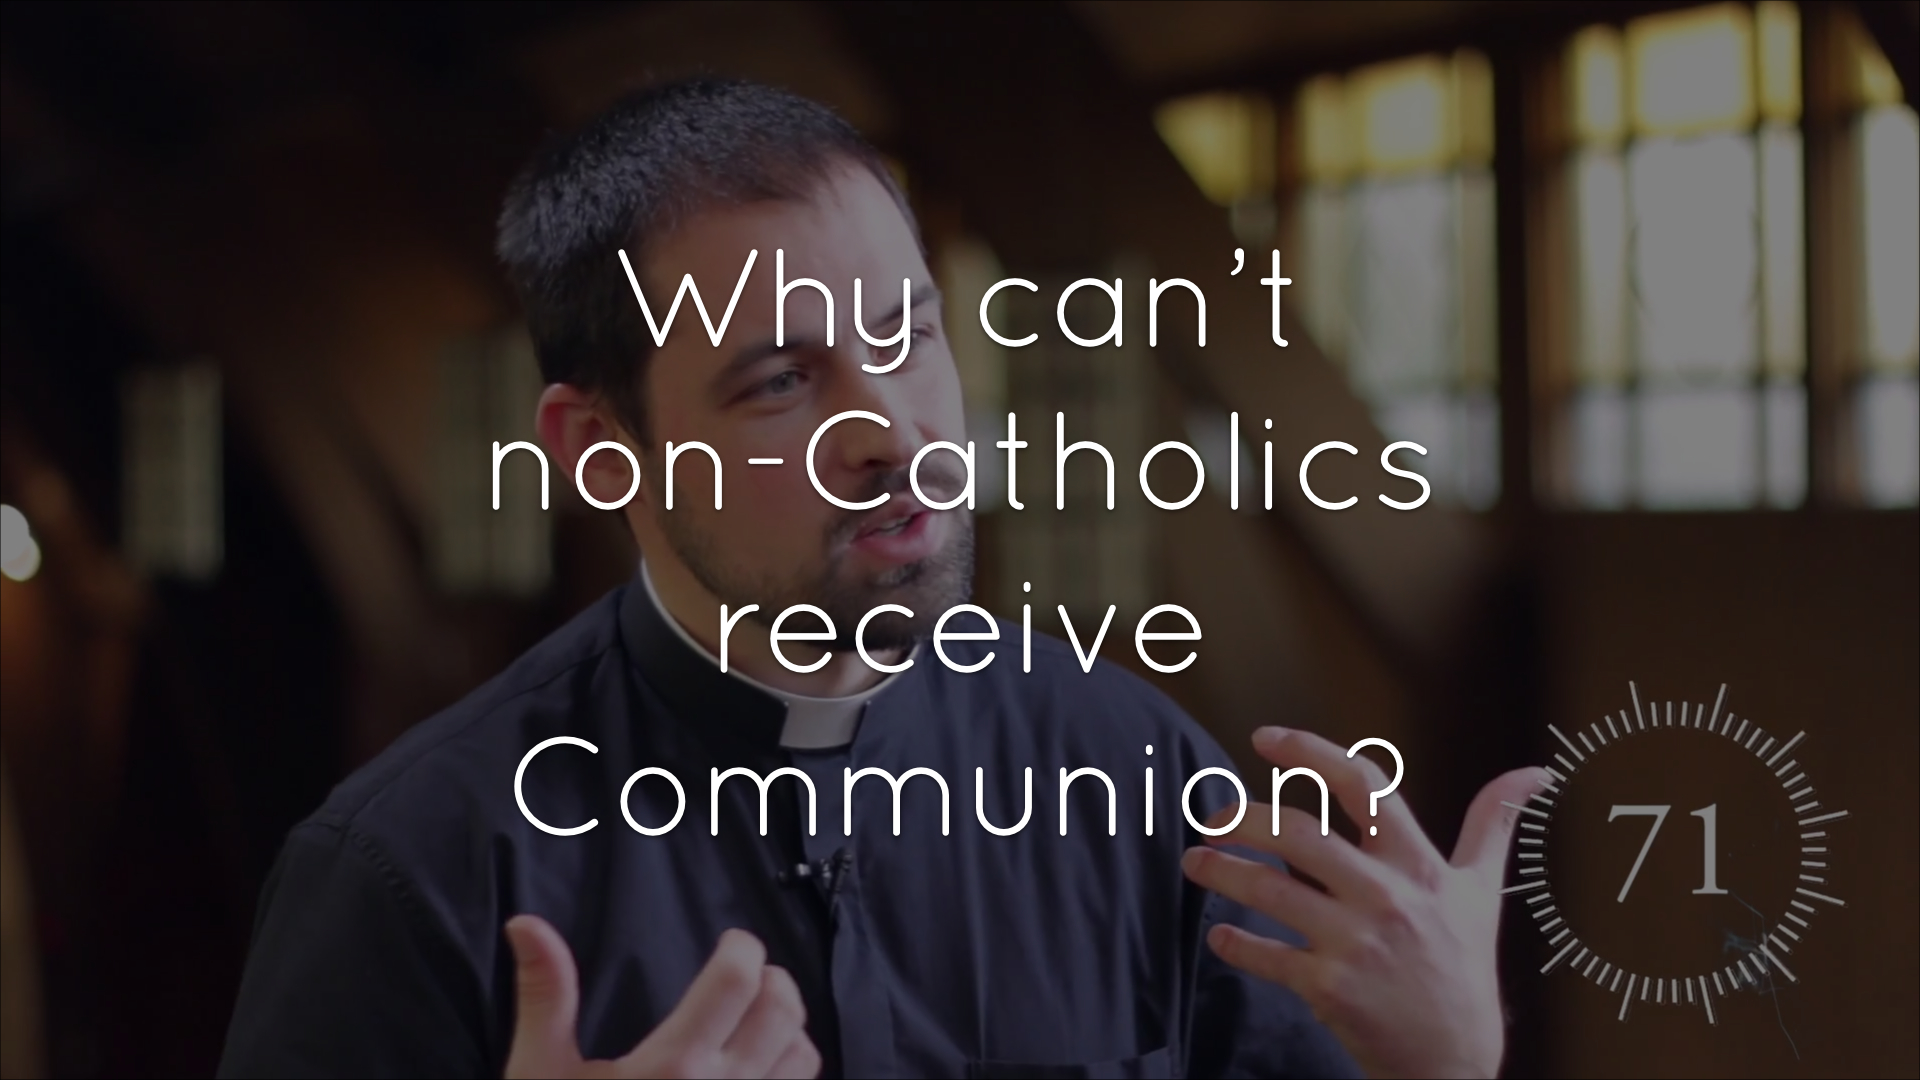 Why can't non-Catholics receive Communion?